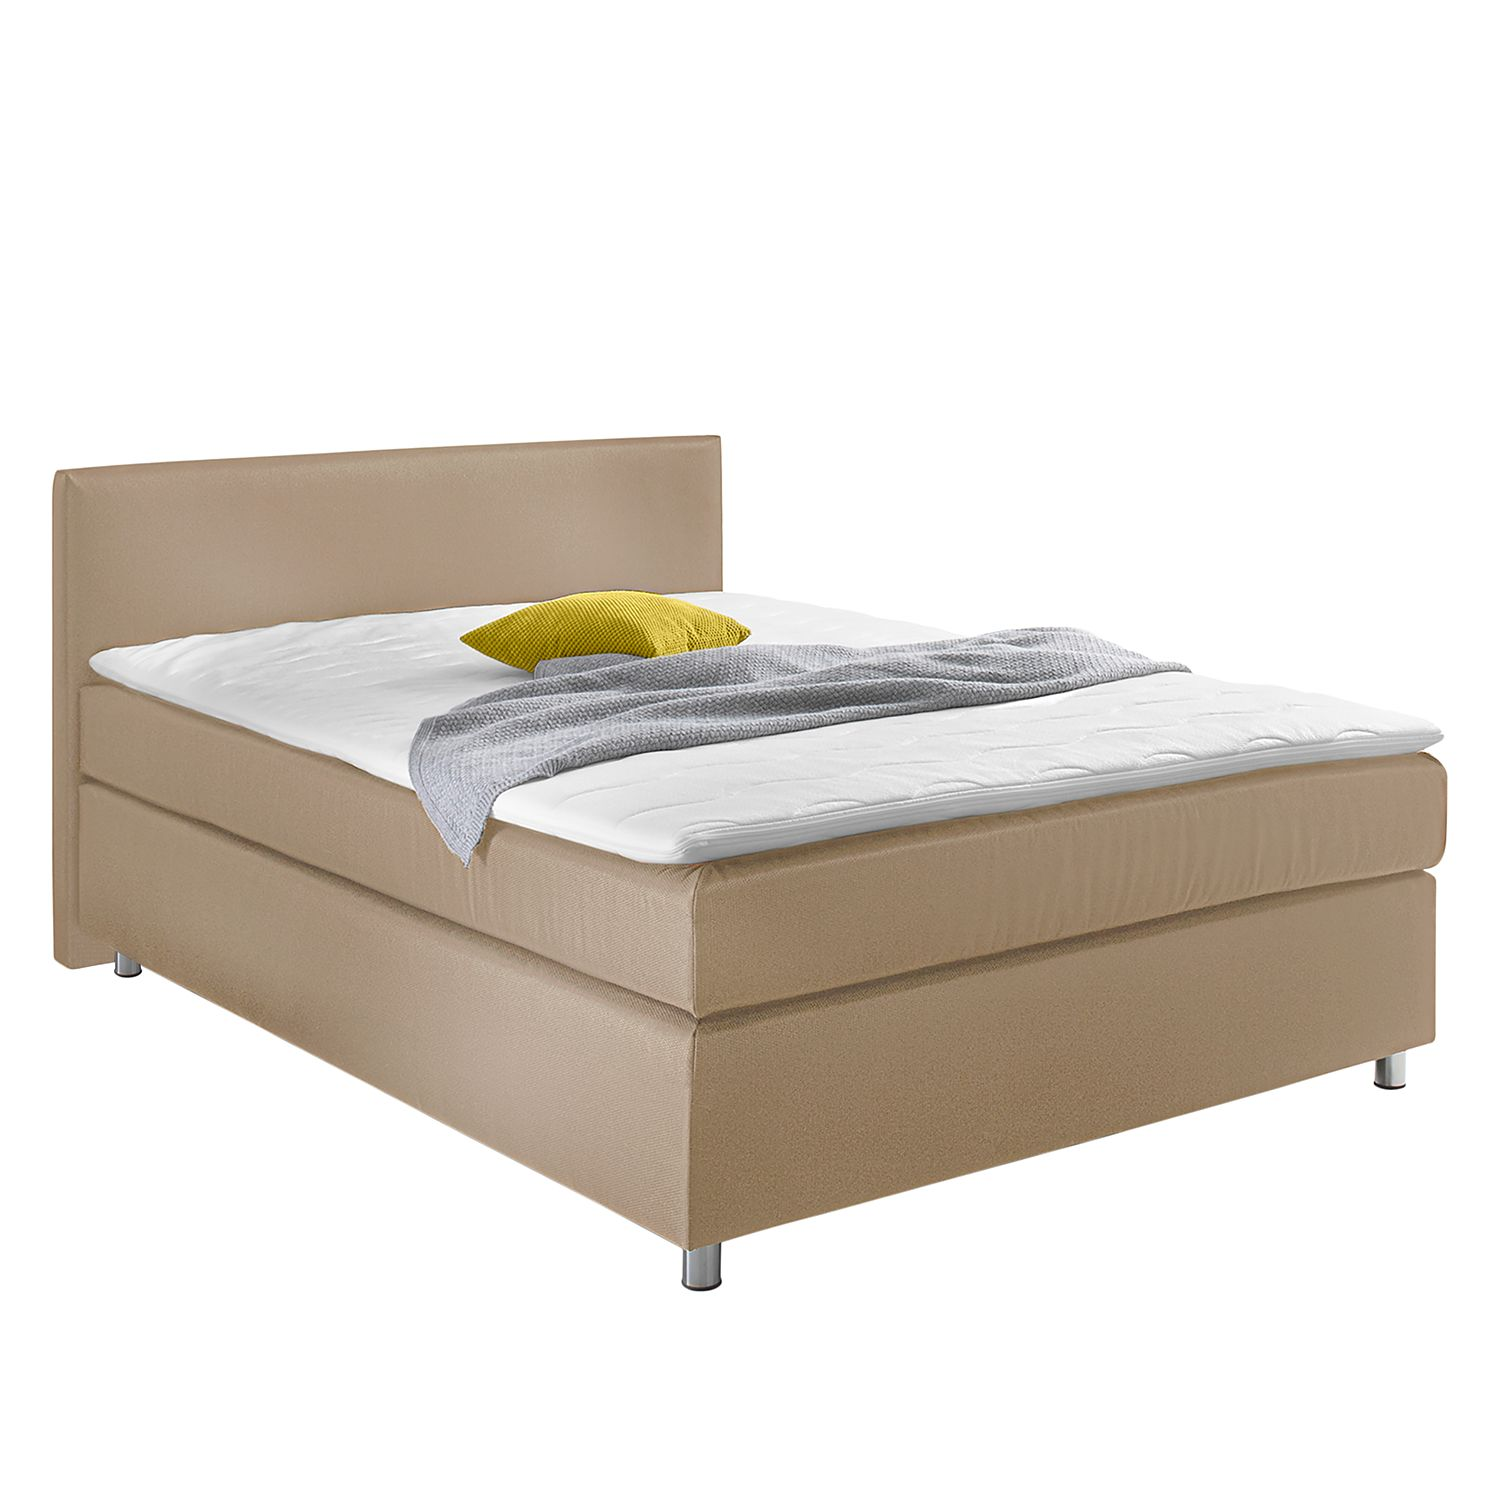 goedkoop Boxspring Frimley incl. topper geweven stof Beige reconcept